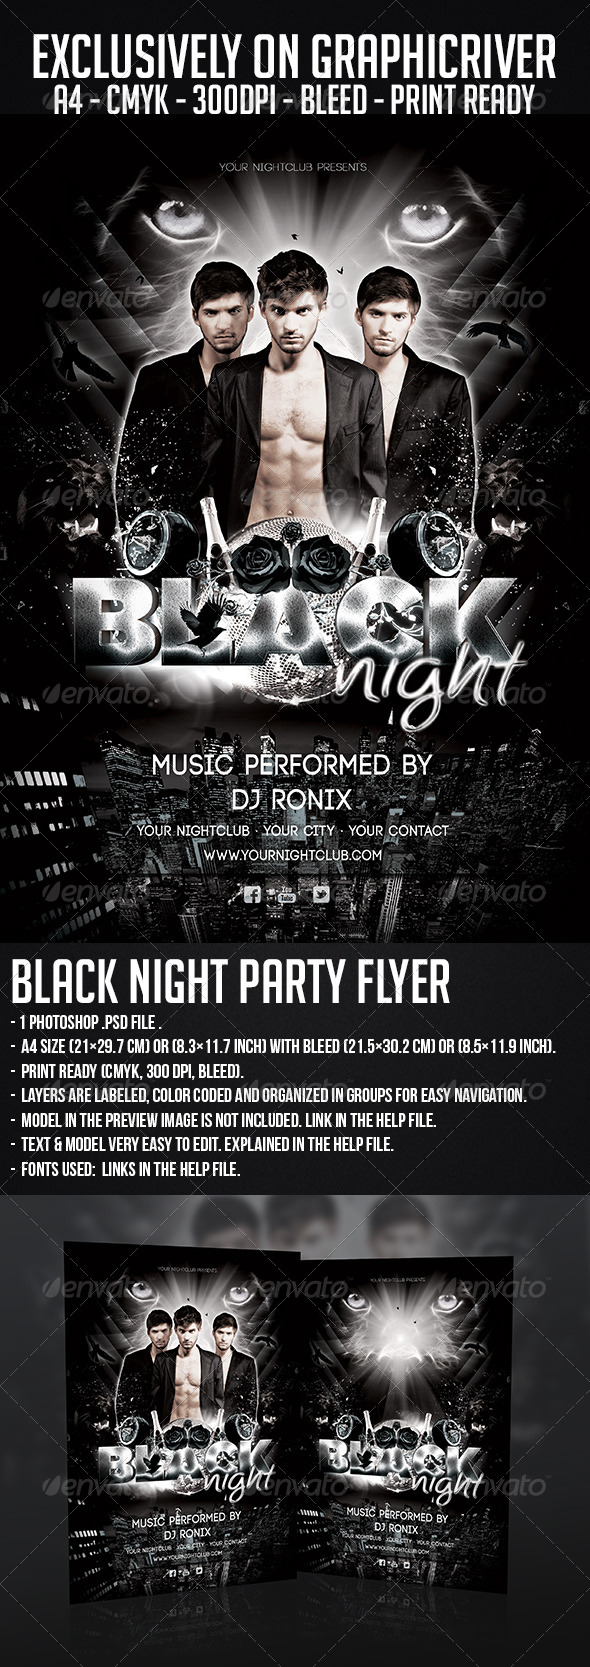 GraphicRiver Black Night Party Flyer 5828936